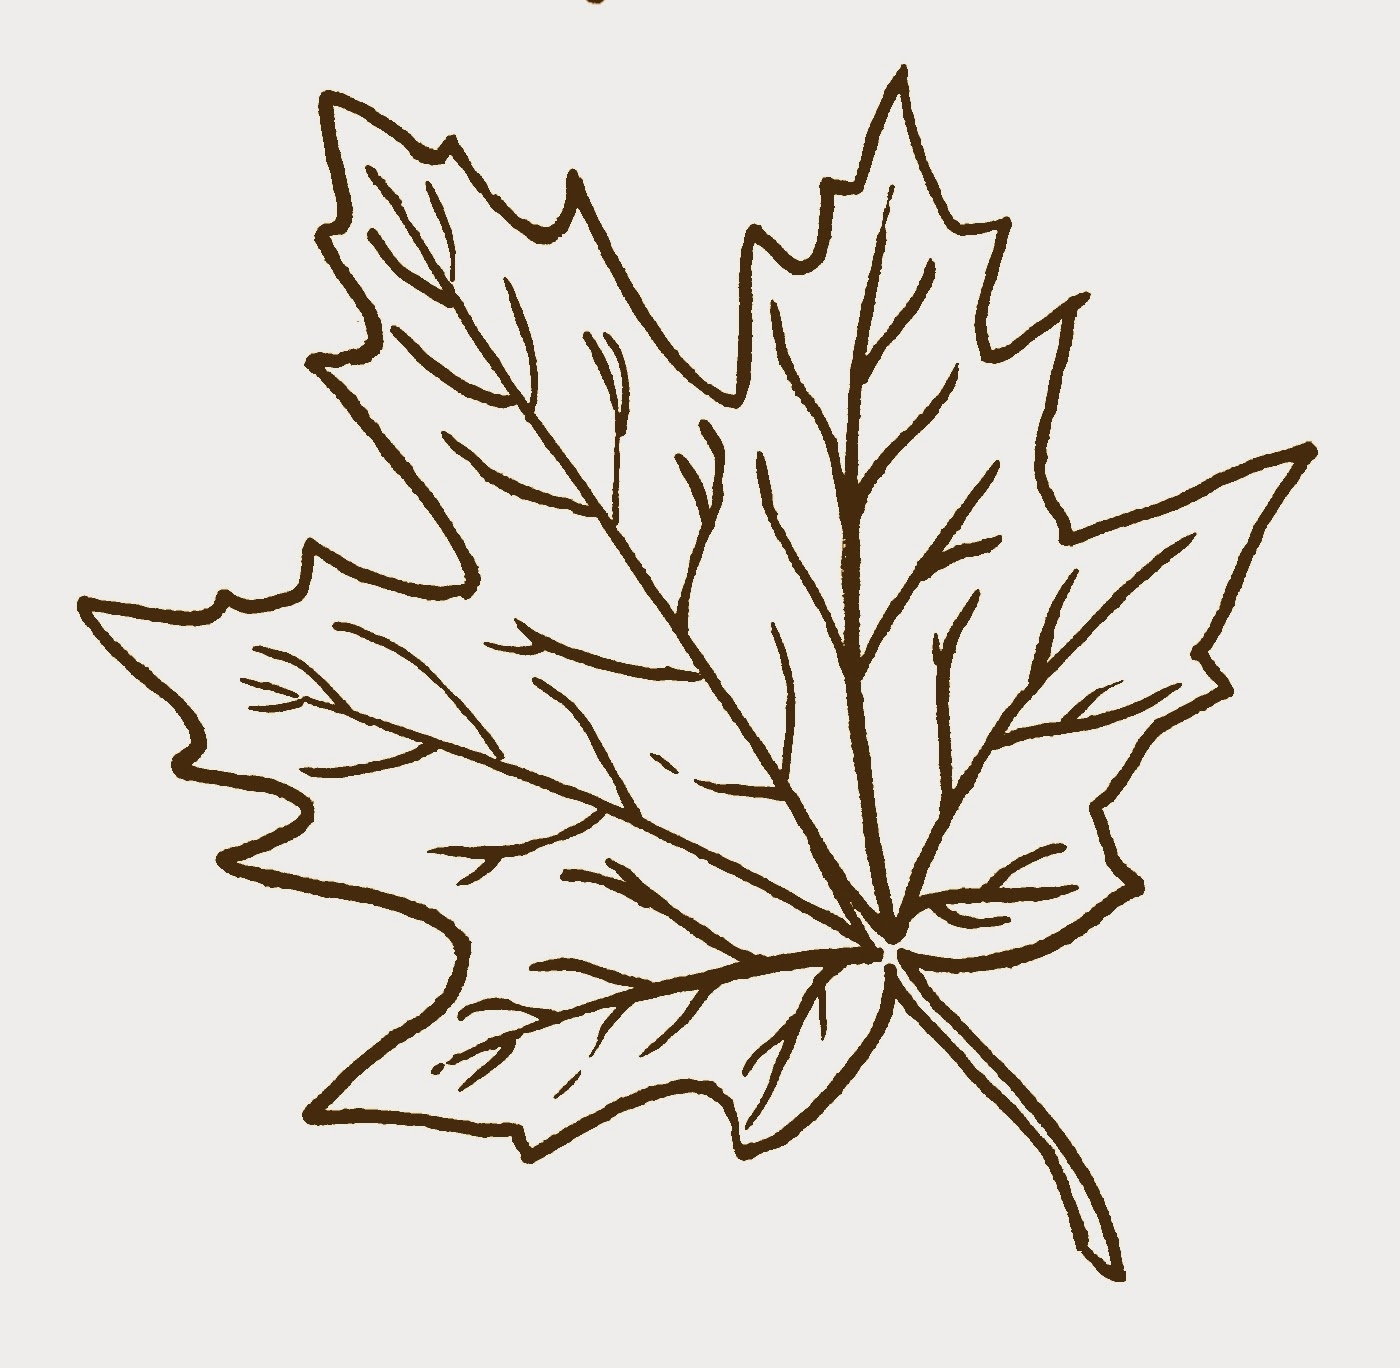 Leaf black and white september leaves clipart black and white.